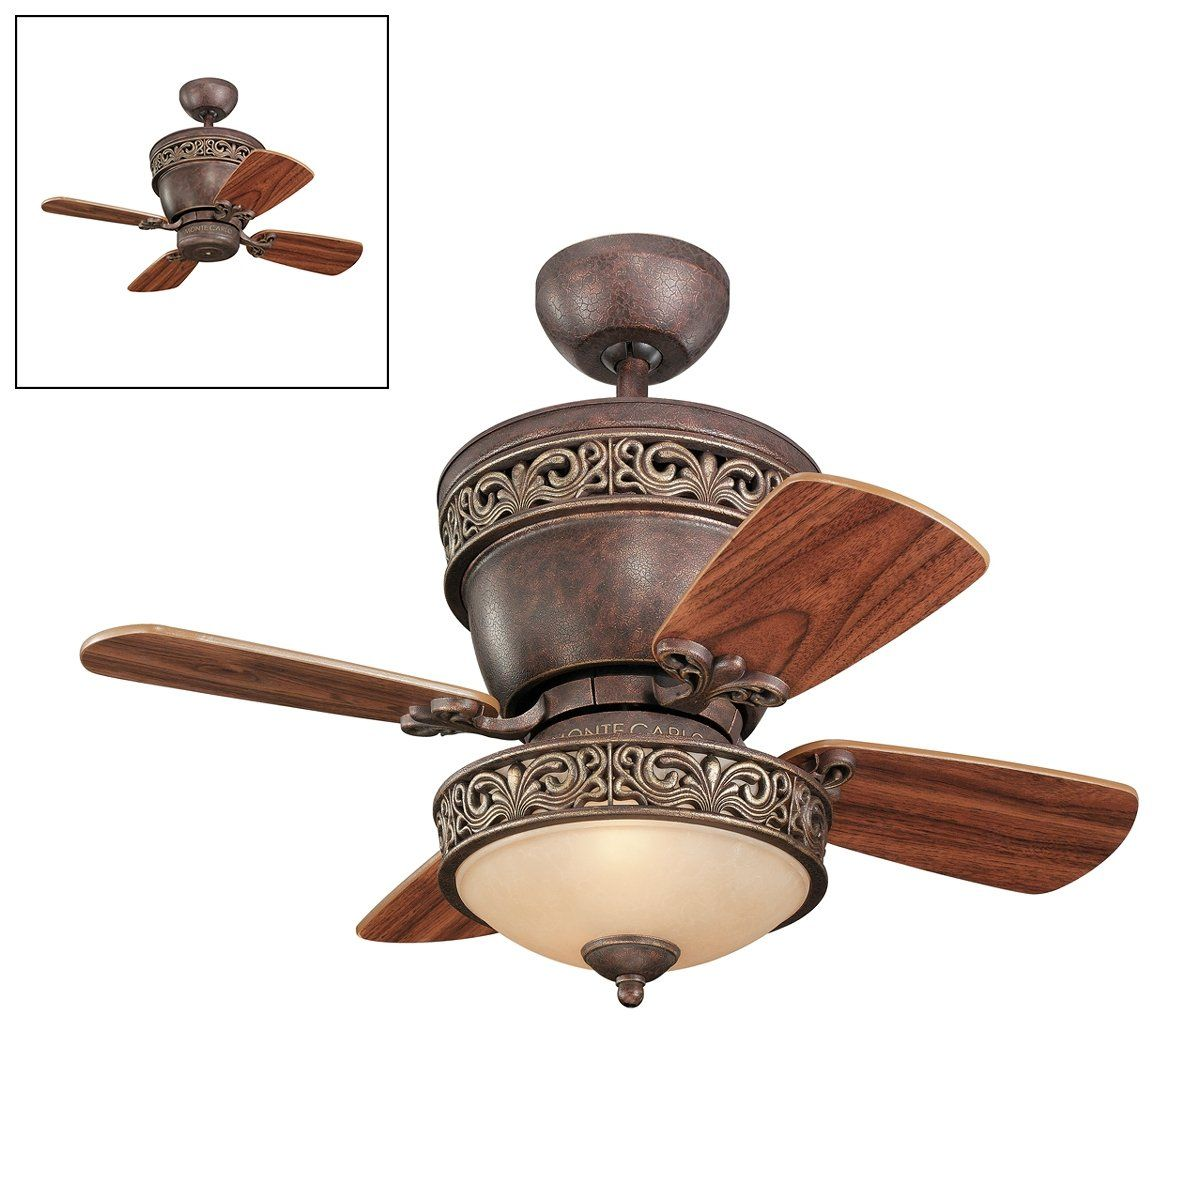 209monte carlo fan 4vg4228tbd l 2 light villager ceiling fan 209monte carlo fan 4vg4228tbd l 2 light villager ceiling fan tuscan arubaitofo Image collections